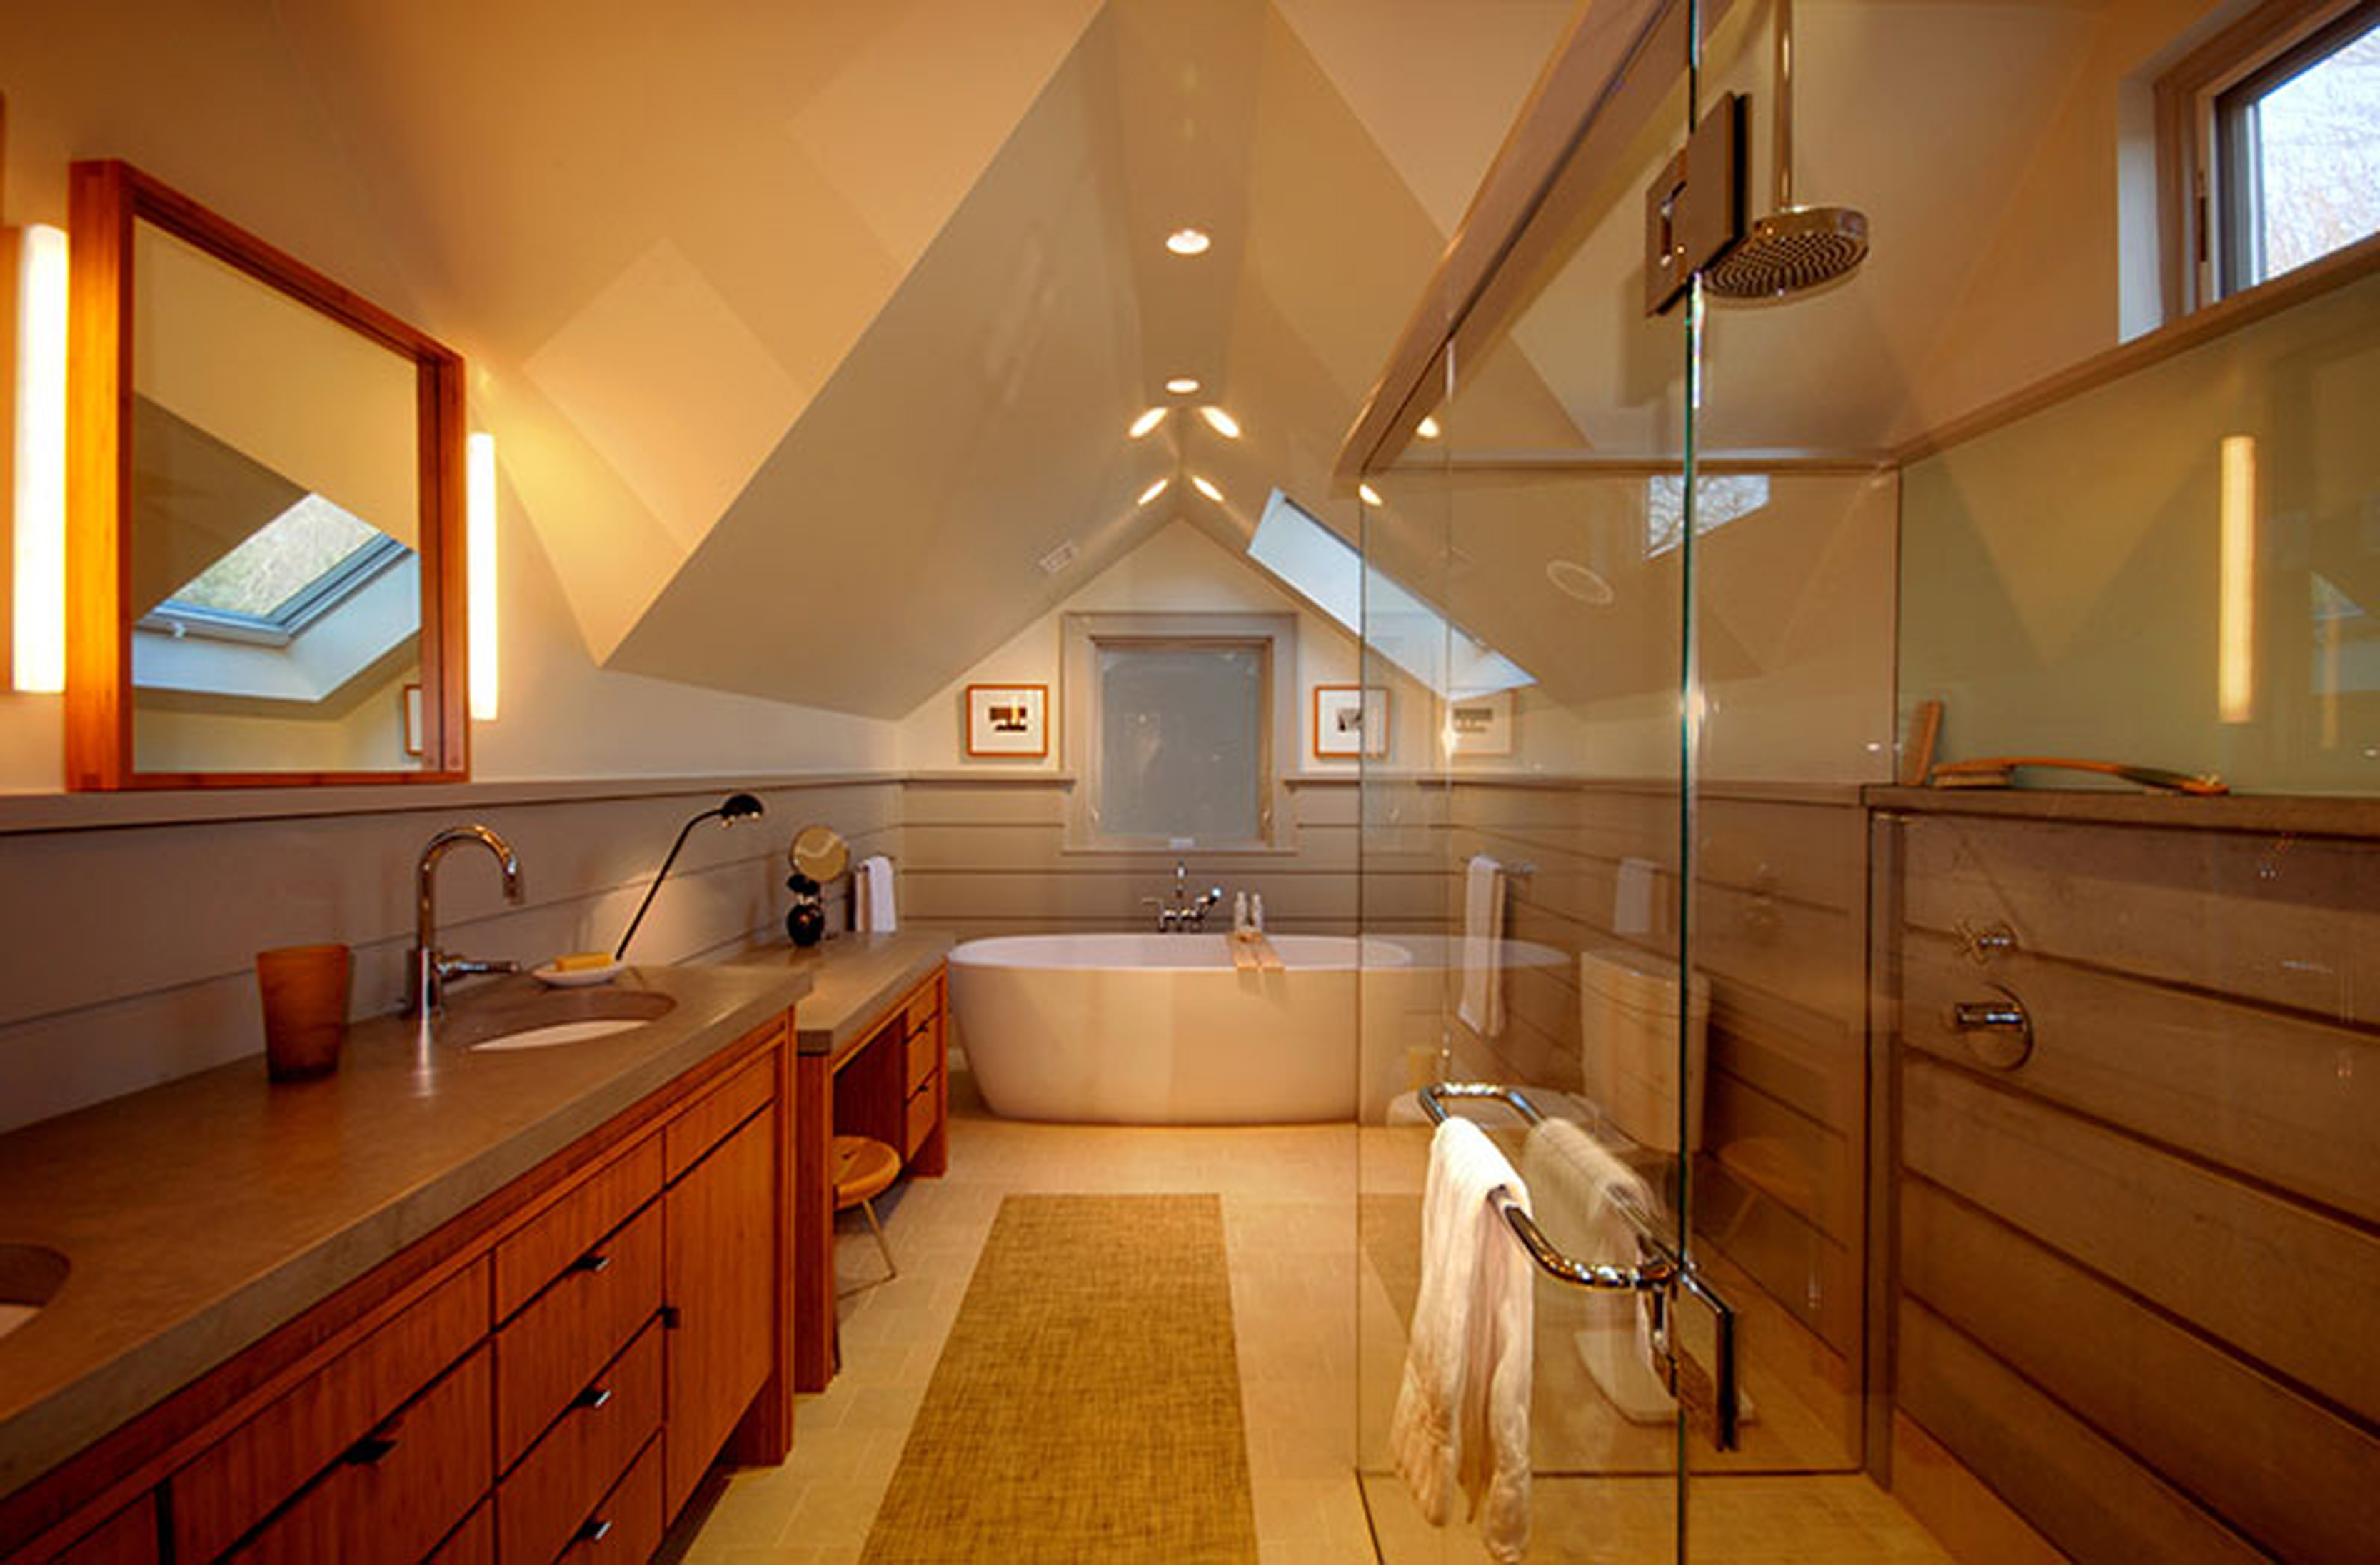 Studio InSitu - Attic bathroom suite